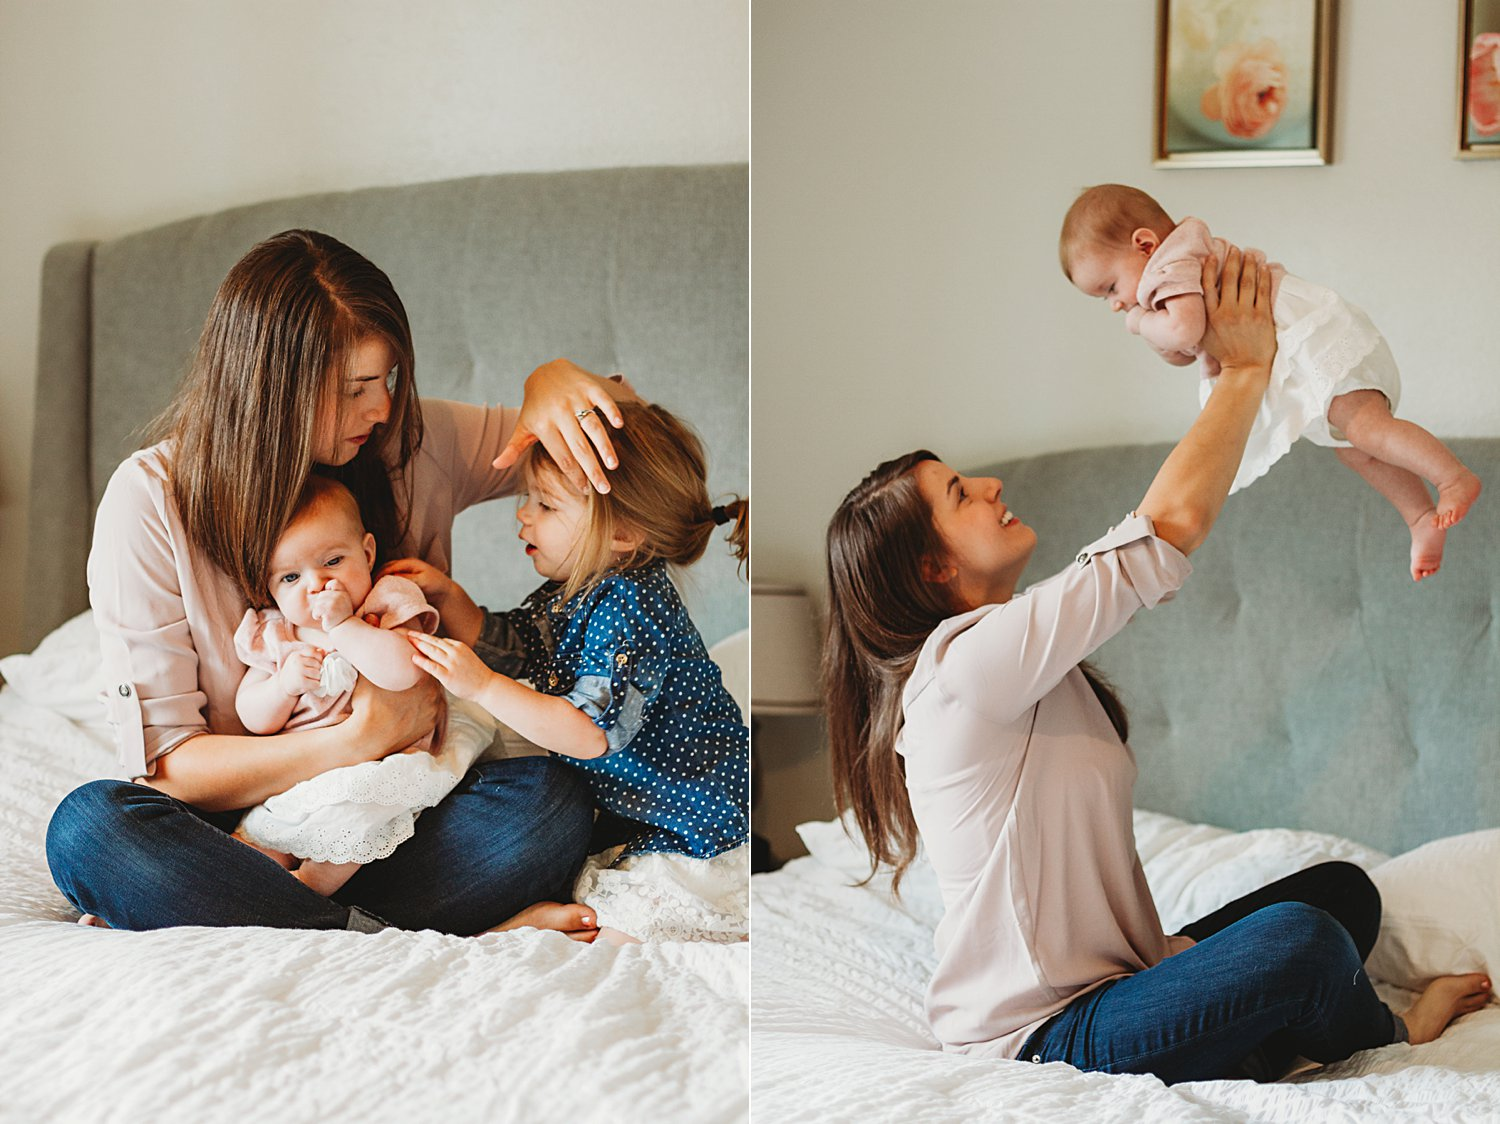 Candid lifestyle photos of mom with young children on bed